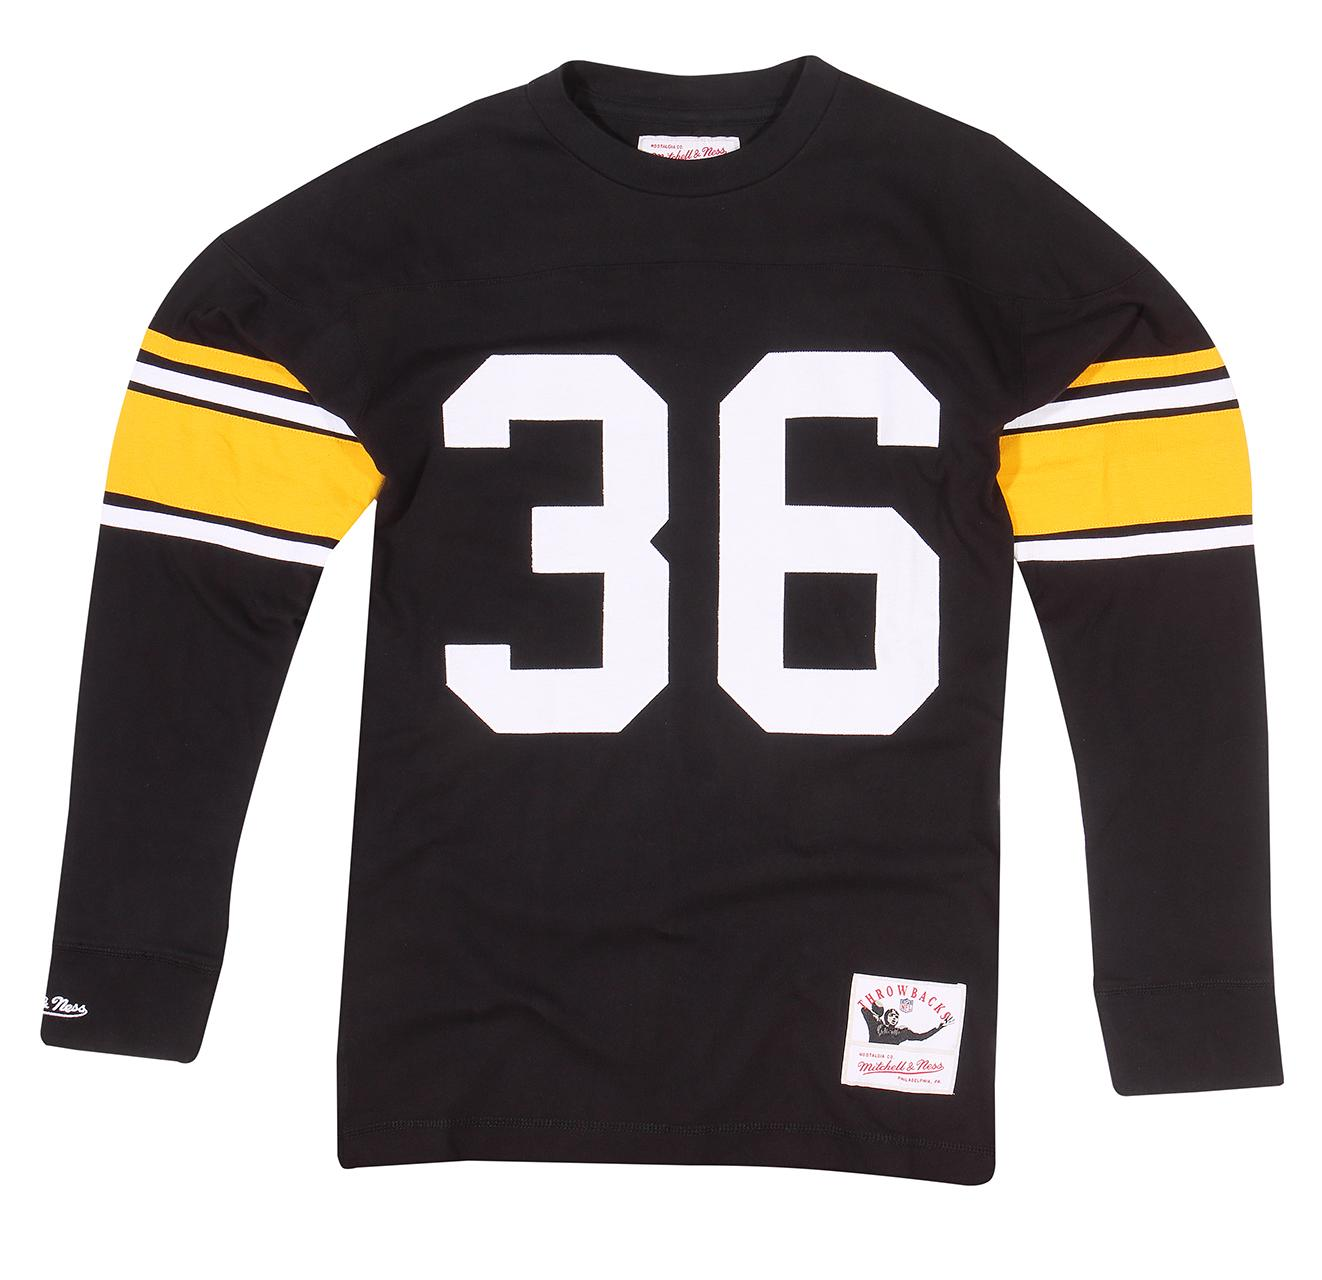 half off ae13a 14f48 Mitchell & Ness | Jerome Bettis Jersey Inspired Knit Top ...